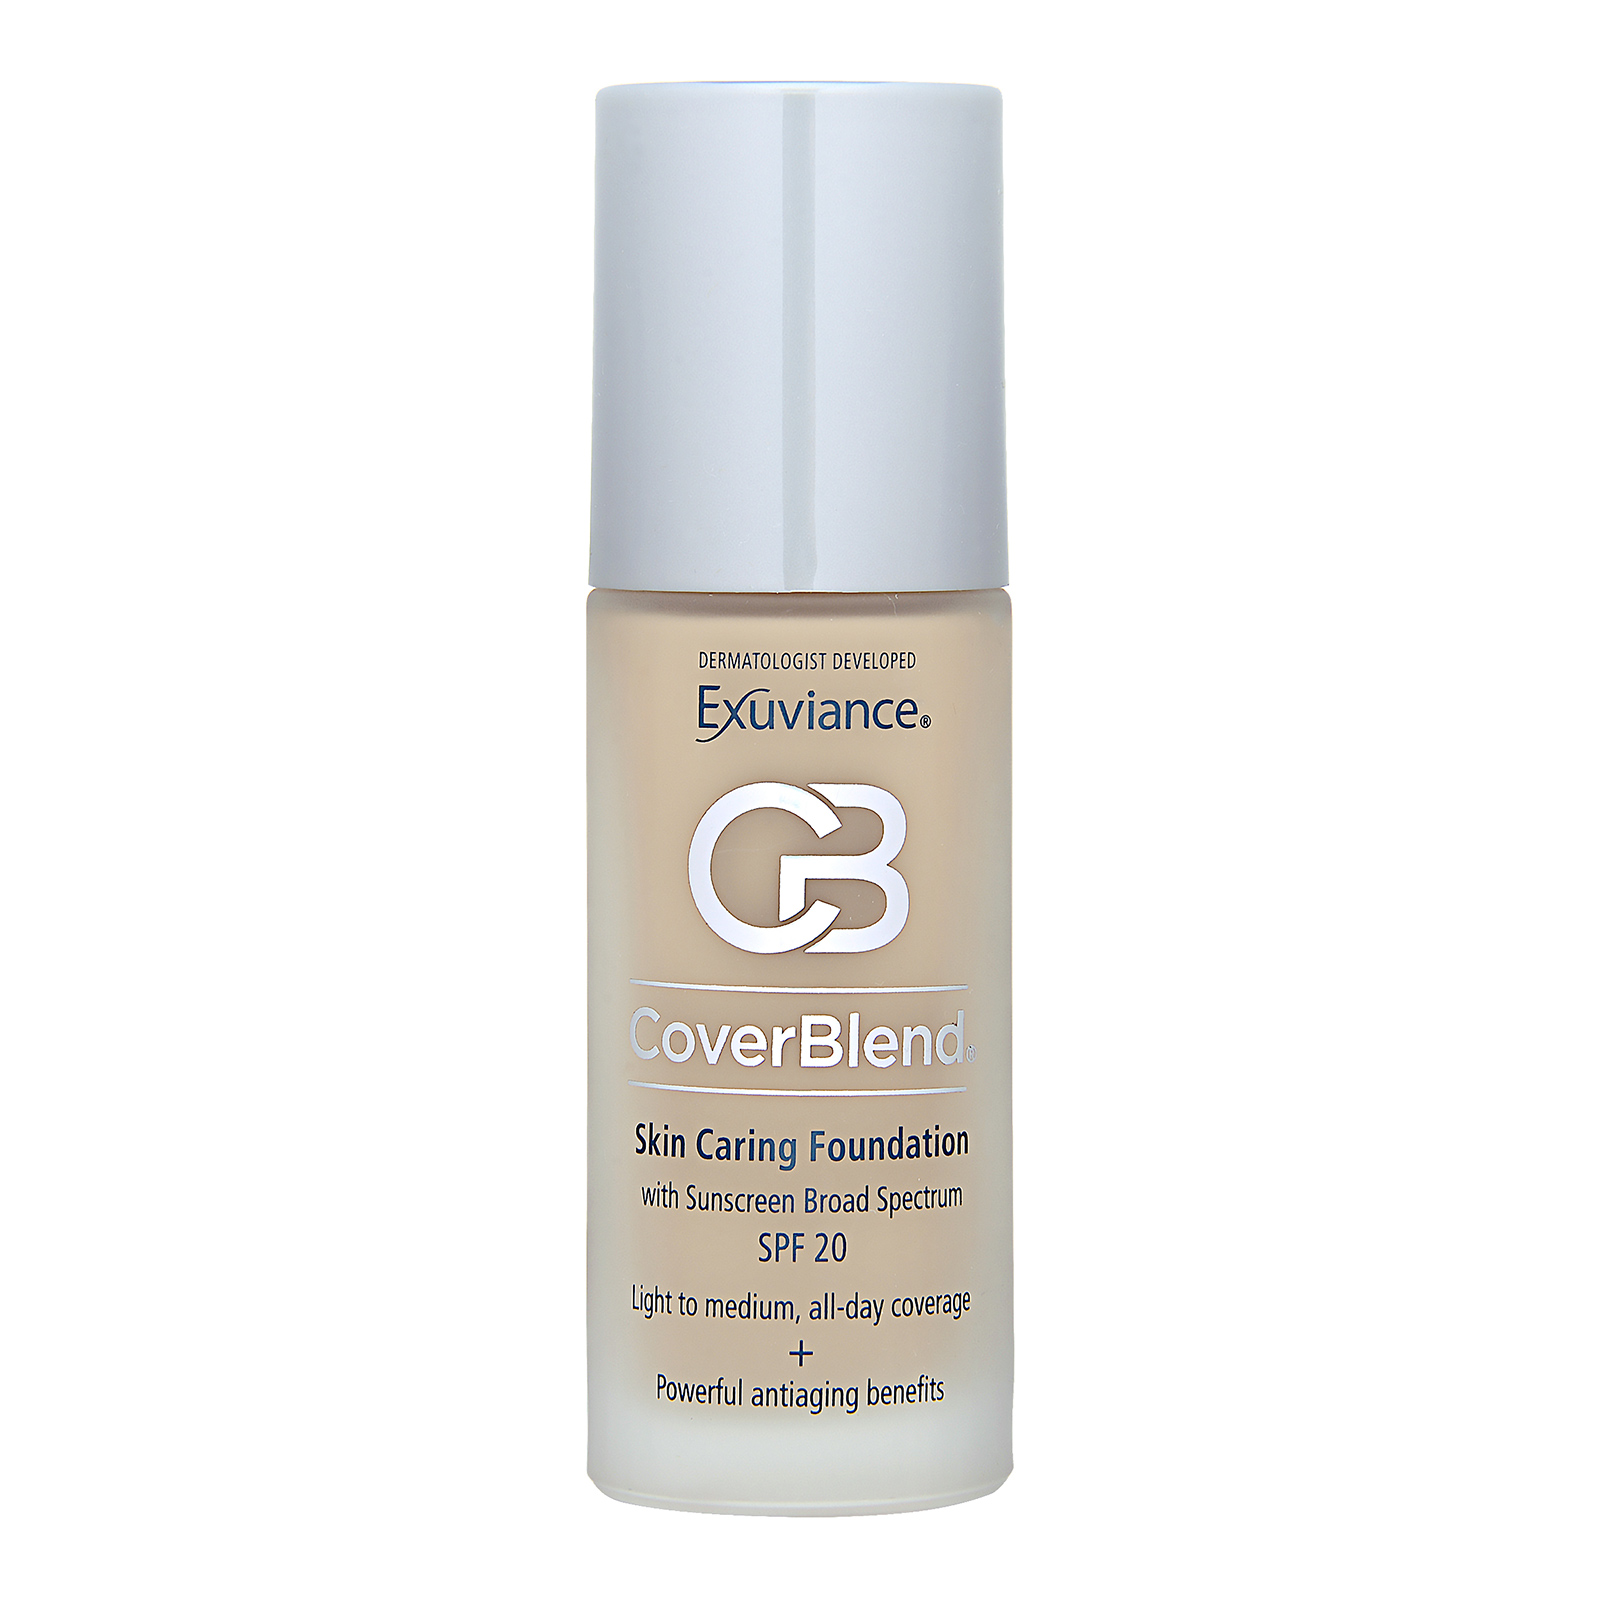 Exuviance Cover Blend  Skin Caring Foundation with Sunscreen Broad Spectrum SPF20 True Beige, 1oz, 30ml